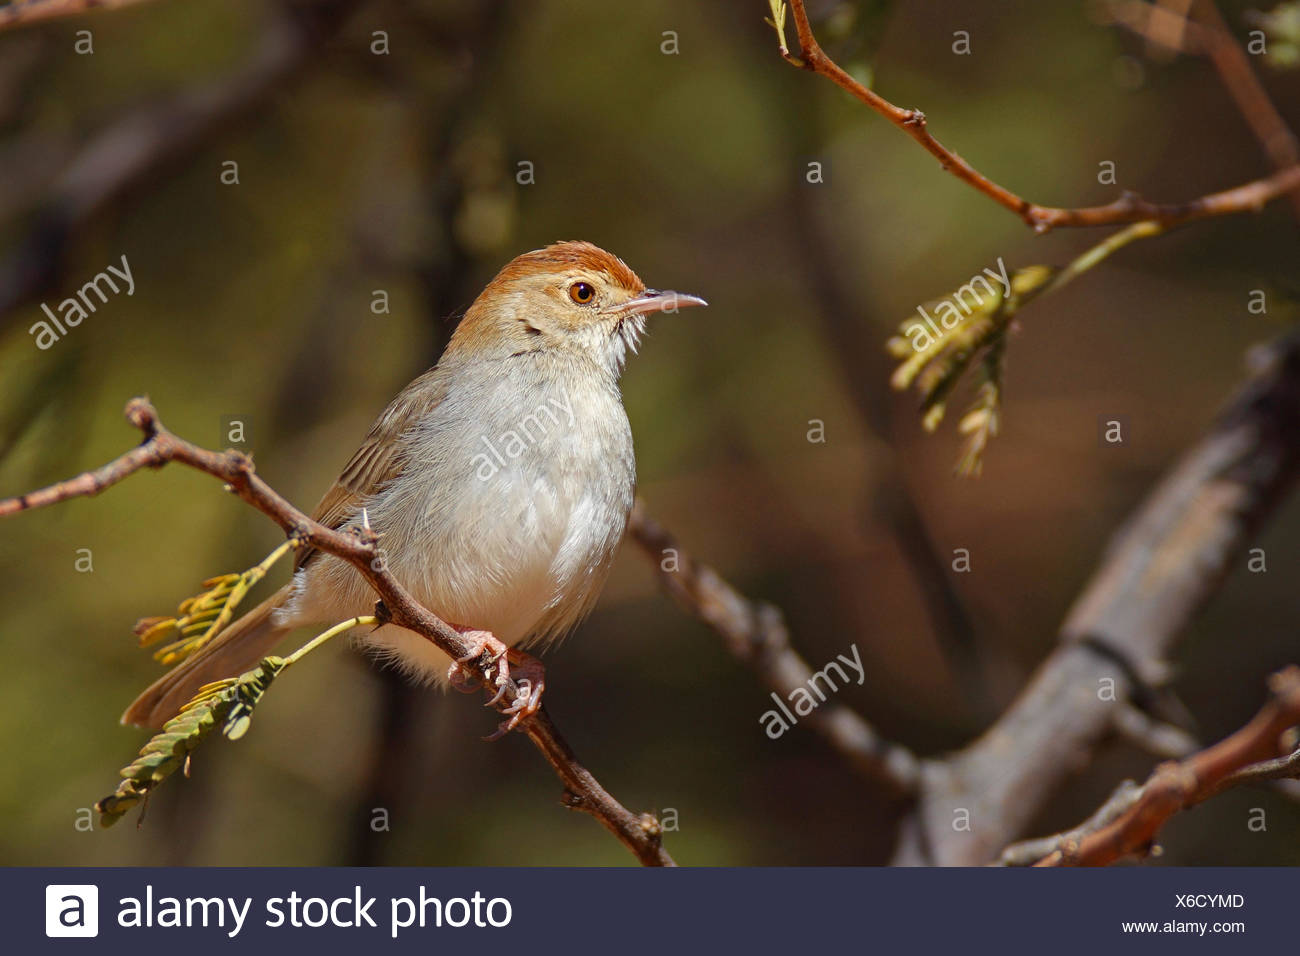 Piping cisticola (Cisticola fulvicapilla), sitting in a bush, South Africa, North West Province - Stock Image